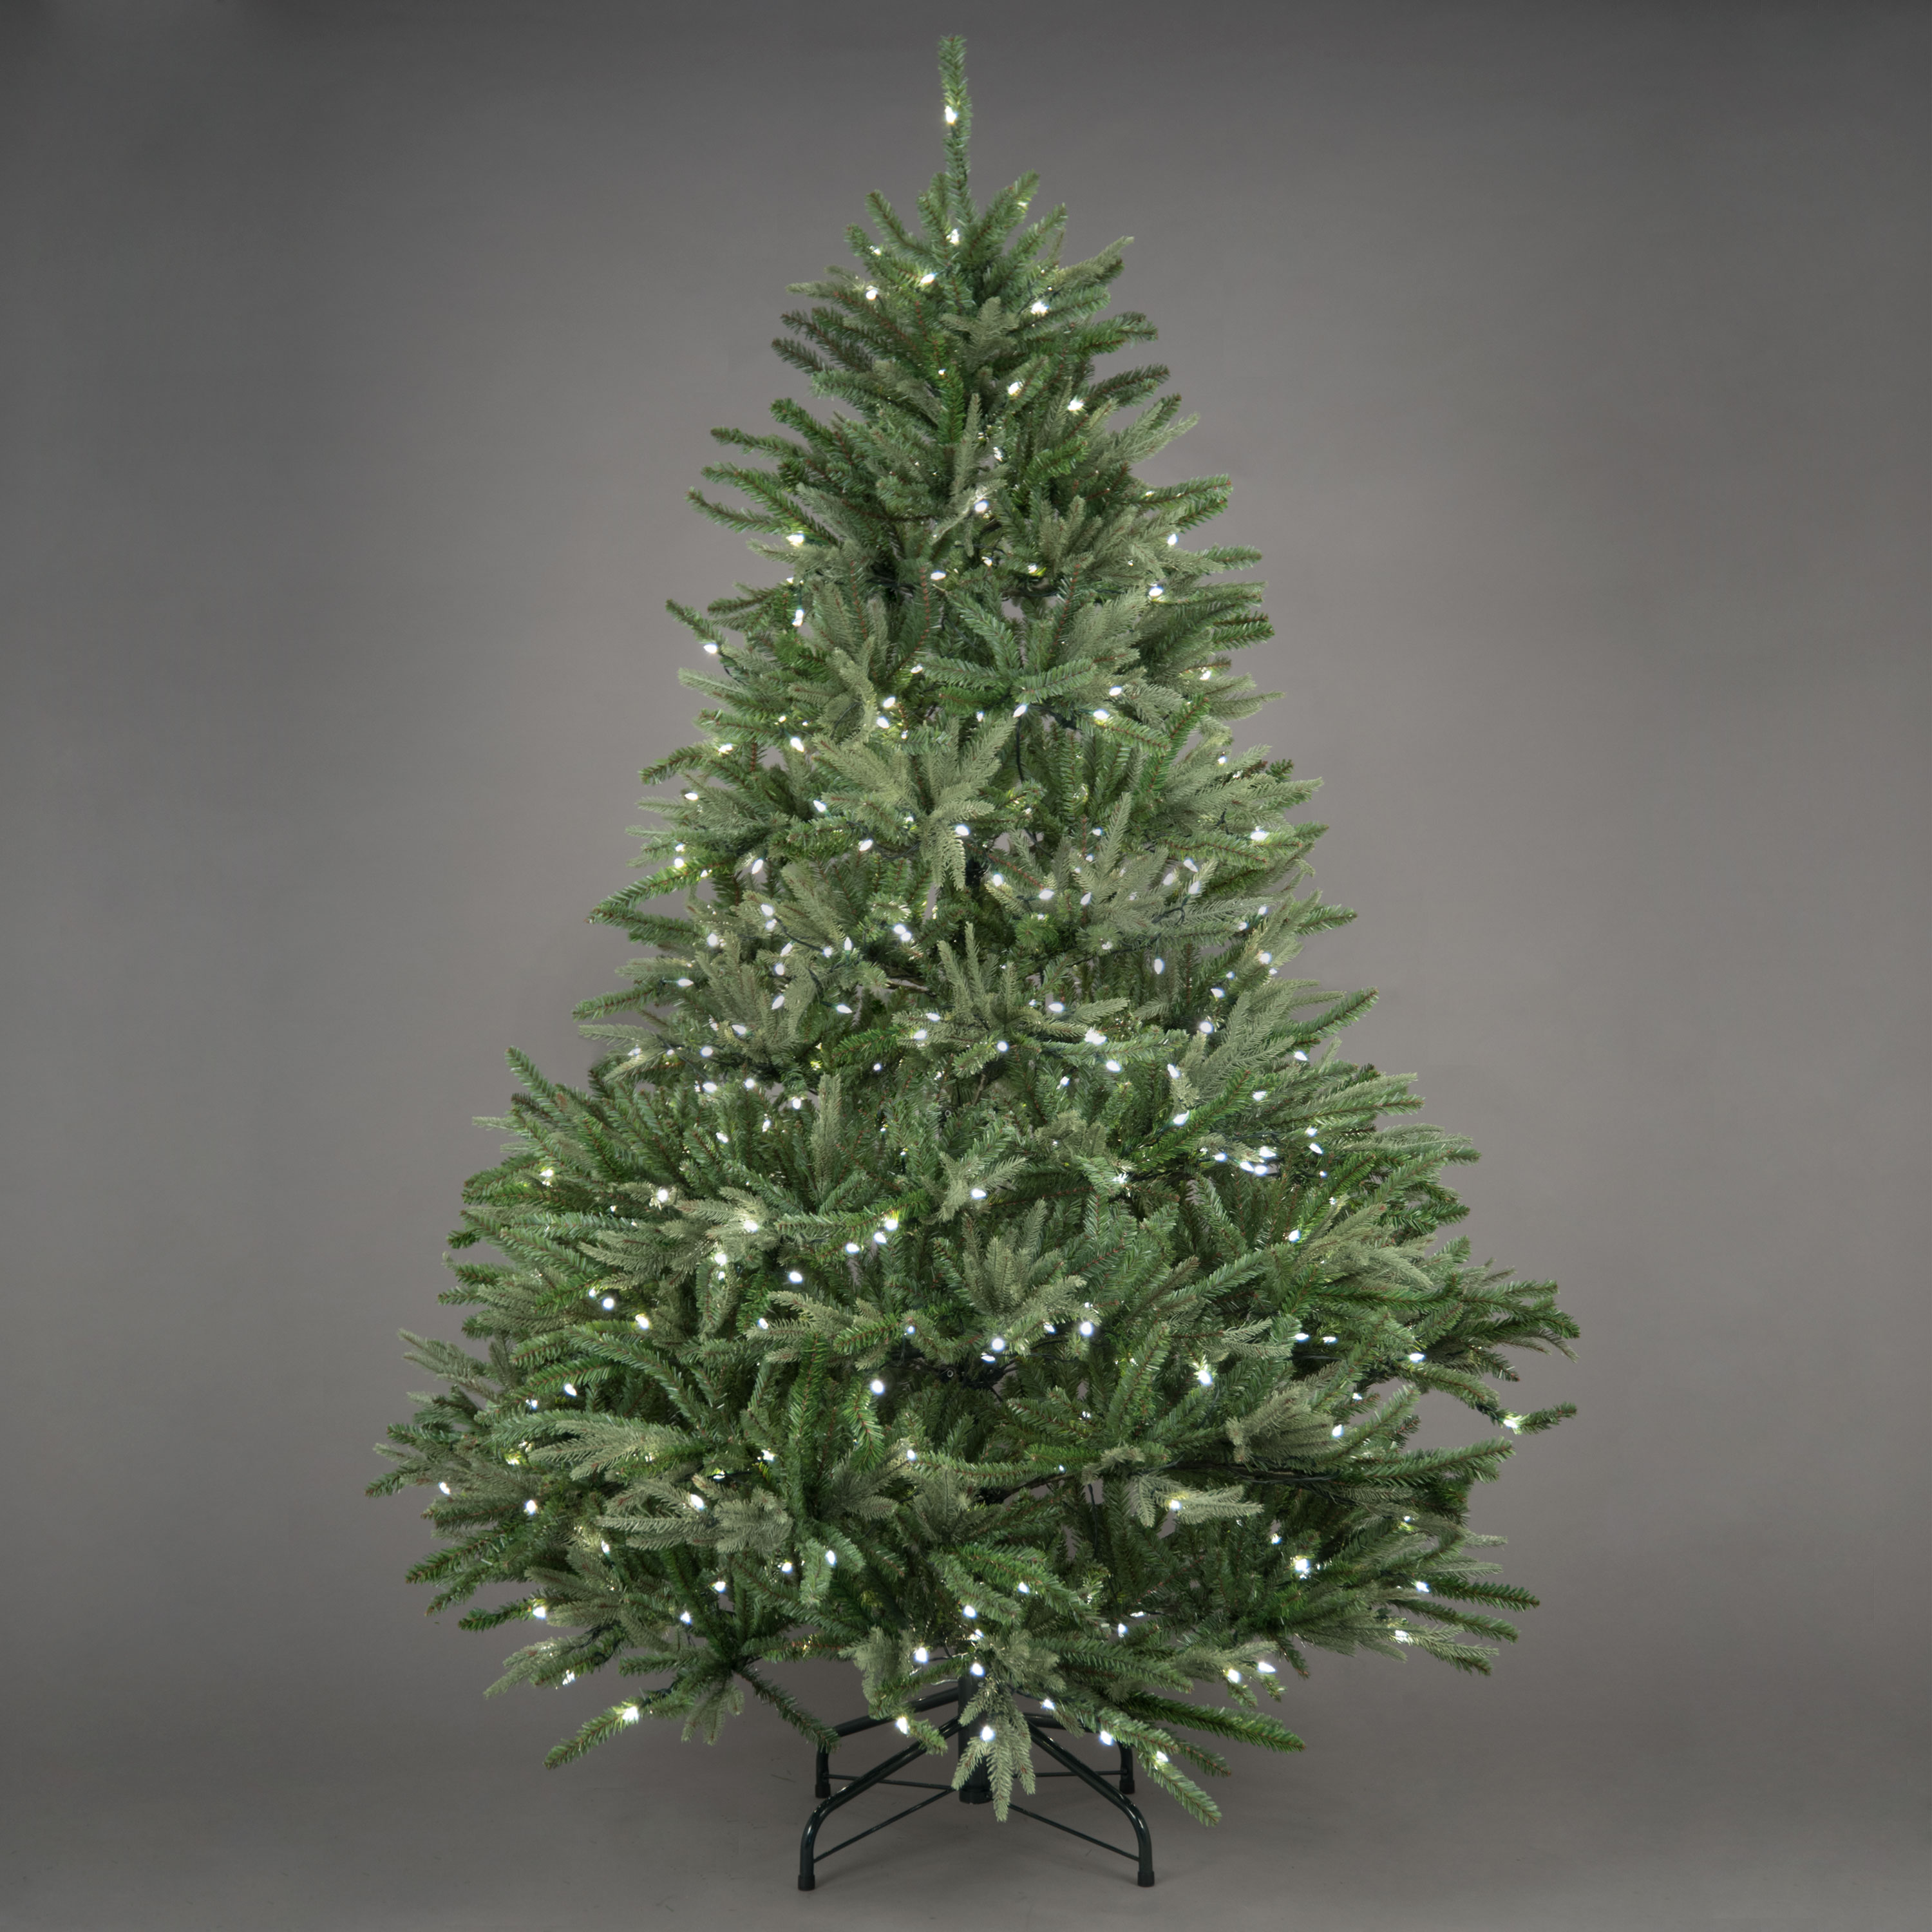 Buy cheap Prelit christmas tree - compare House Decorations prices ...